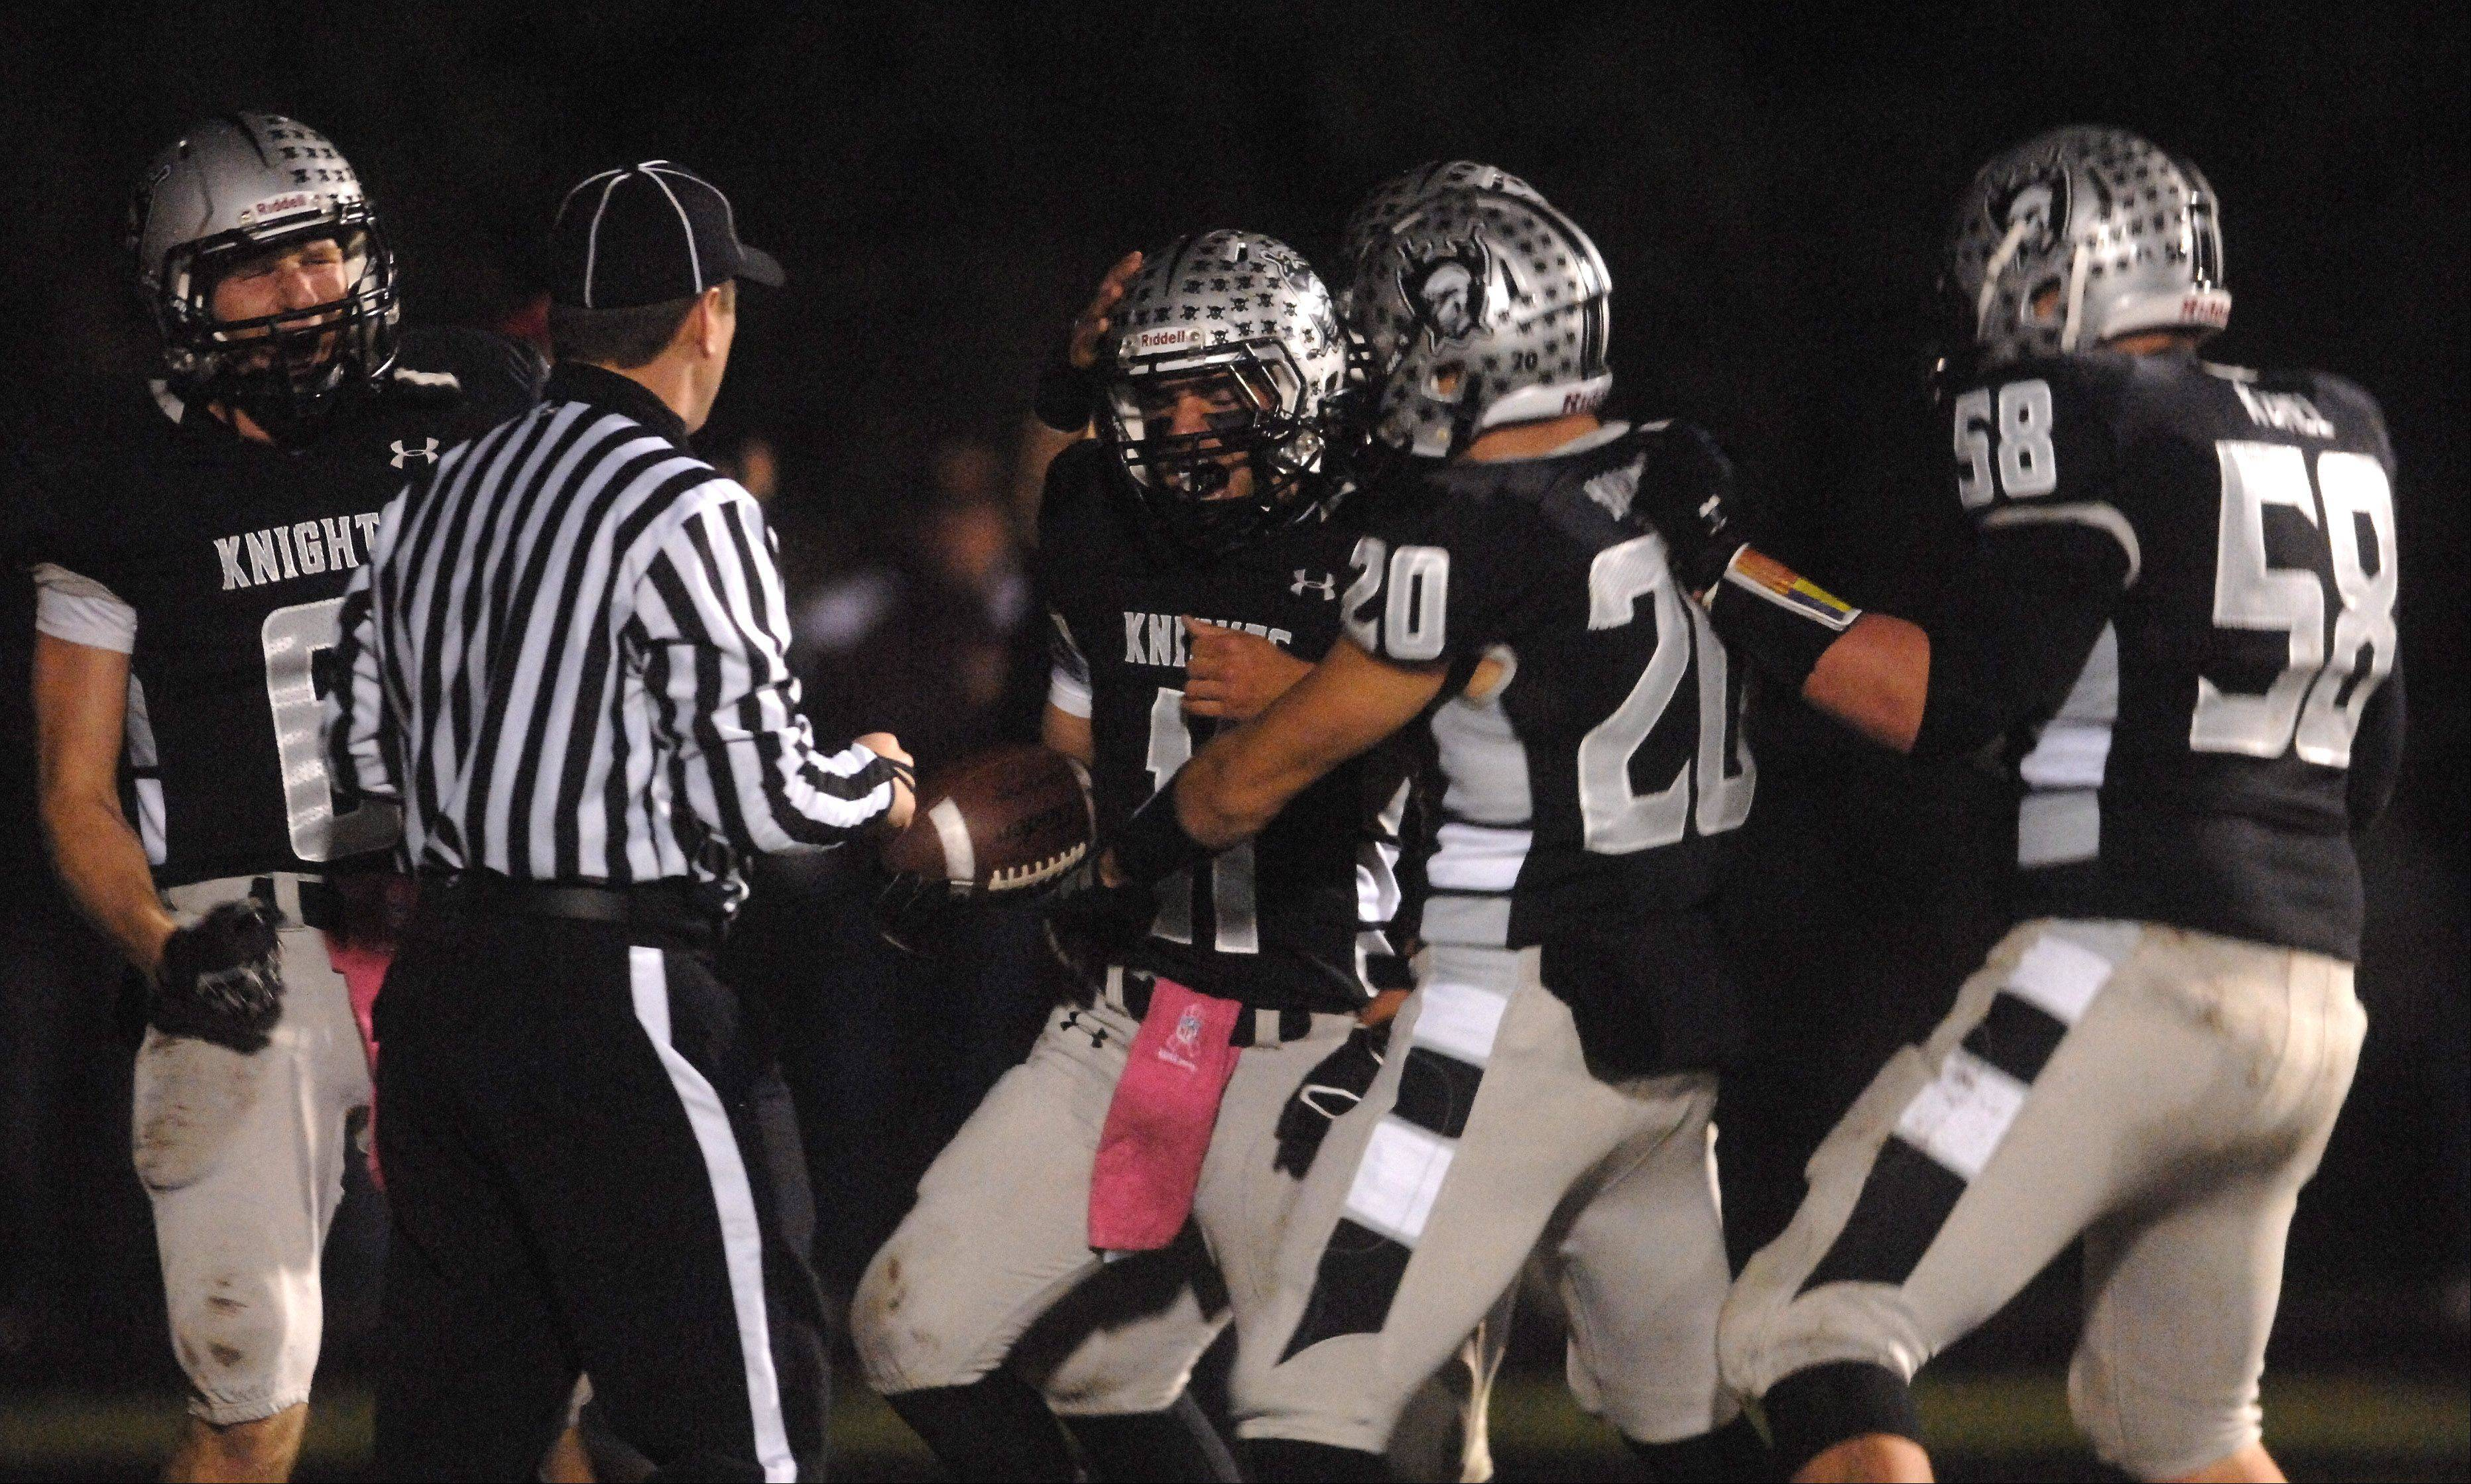 Teammates congratulate Kaneland's Zack Martinelli after a touchdown during Friday's game in Maple Park.